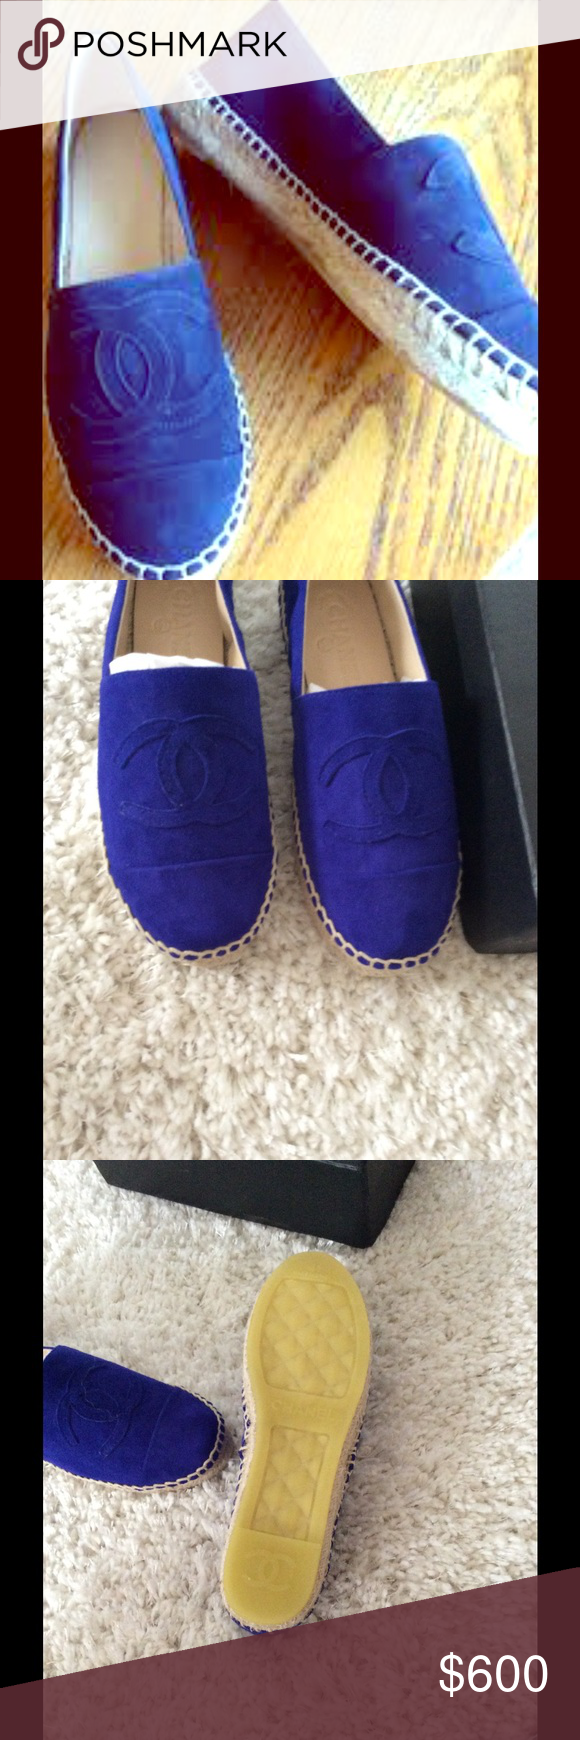 Chanel suede espadrilles Great condition with box Shoes Espadrilles